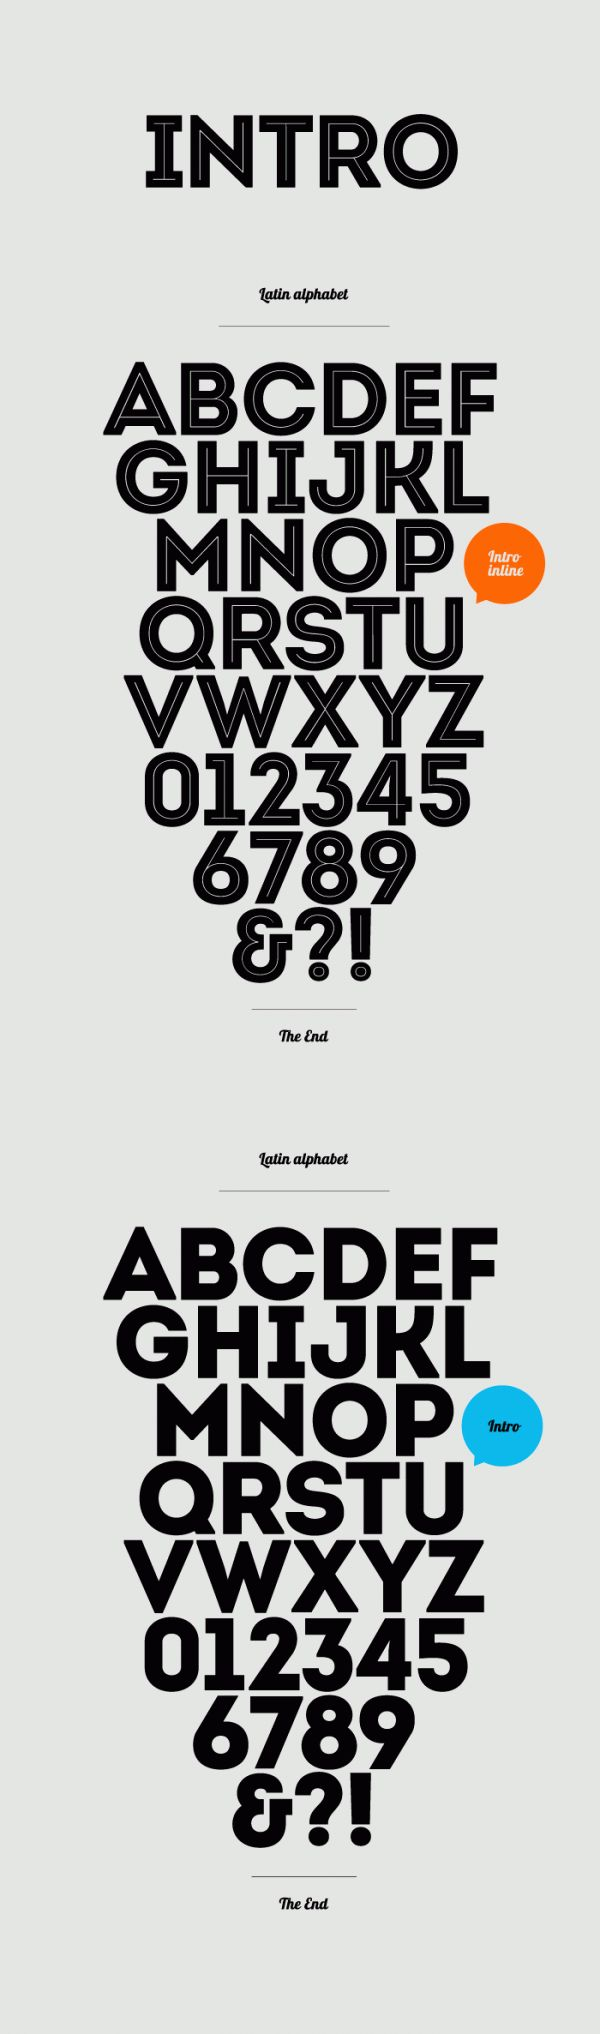 "Free font  Intro by Fontfabric Type Foundry  What distinguishes the new Intro free font from FontFabric is the strongly expressed geometric makeup and structure. The basic letters of the Alphabet like ""A"", ""O"" and ""H"" are built or based on principles of simple geometric forms – triangles, circles and squares.  In contrast to the Futura font which possesses similar styling, the Intro font preserves the characteristic sharpened edges of the ""А"", ""V"" and ""W"" letters even in it's boldened form."